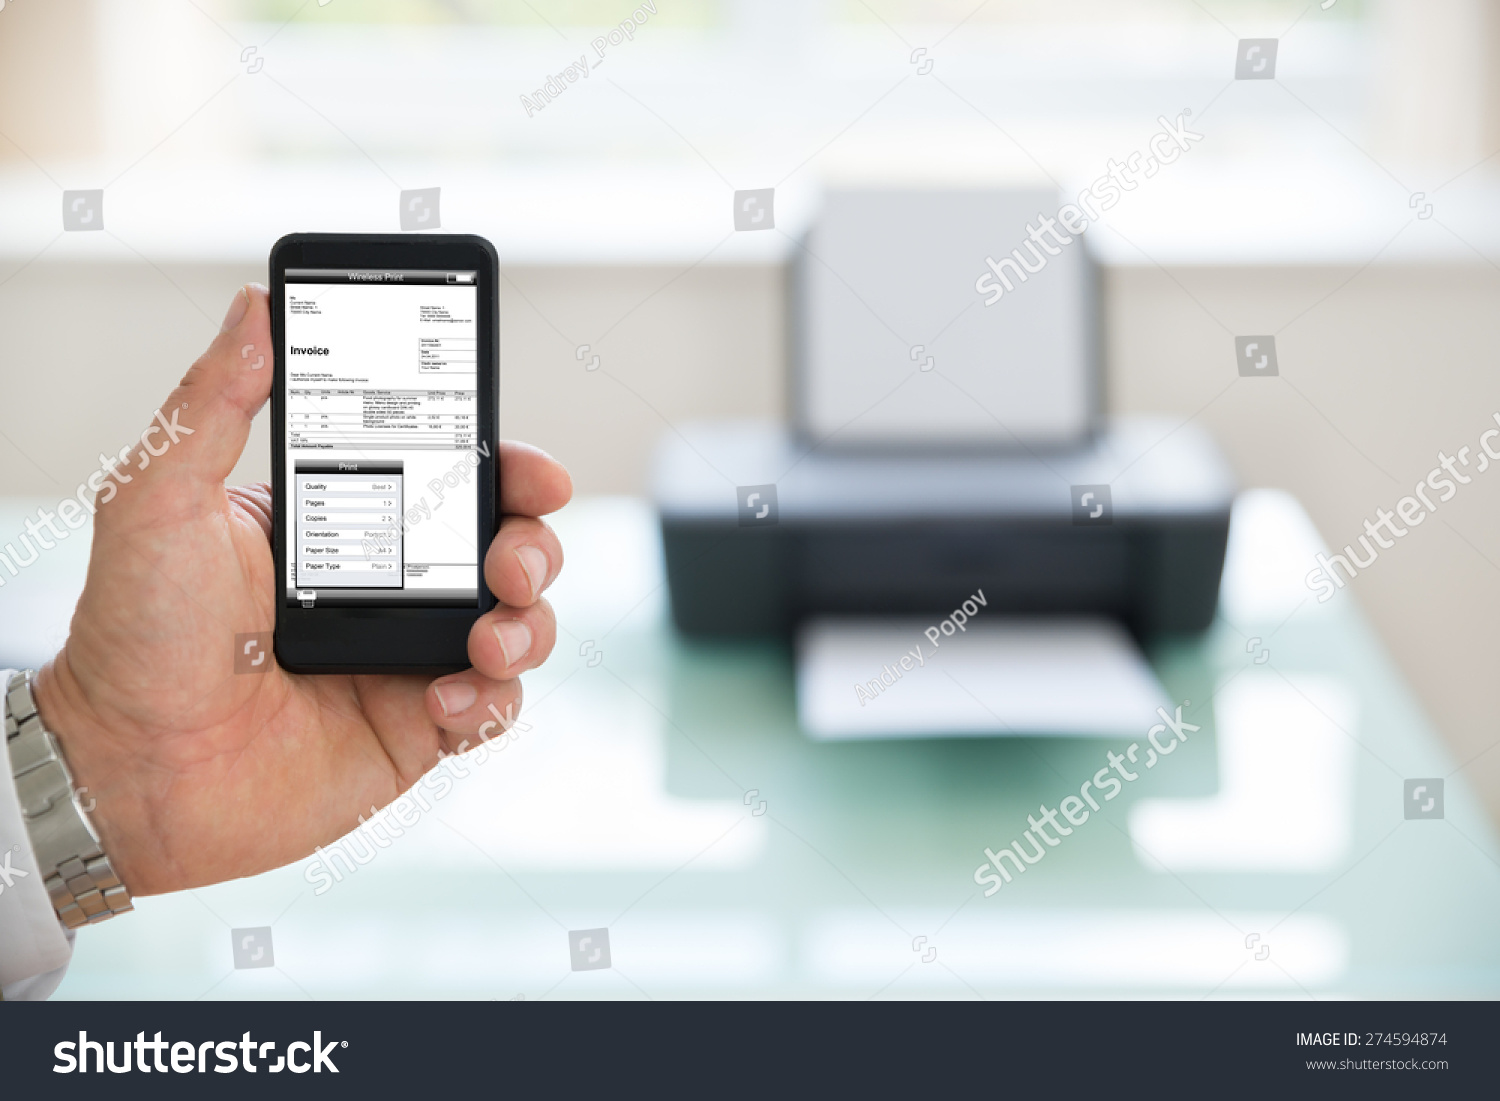 Close-up Of A Businessman Using Cellphone For Printing Invoice Photographer owns copyright for images on screen